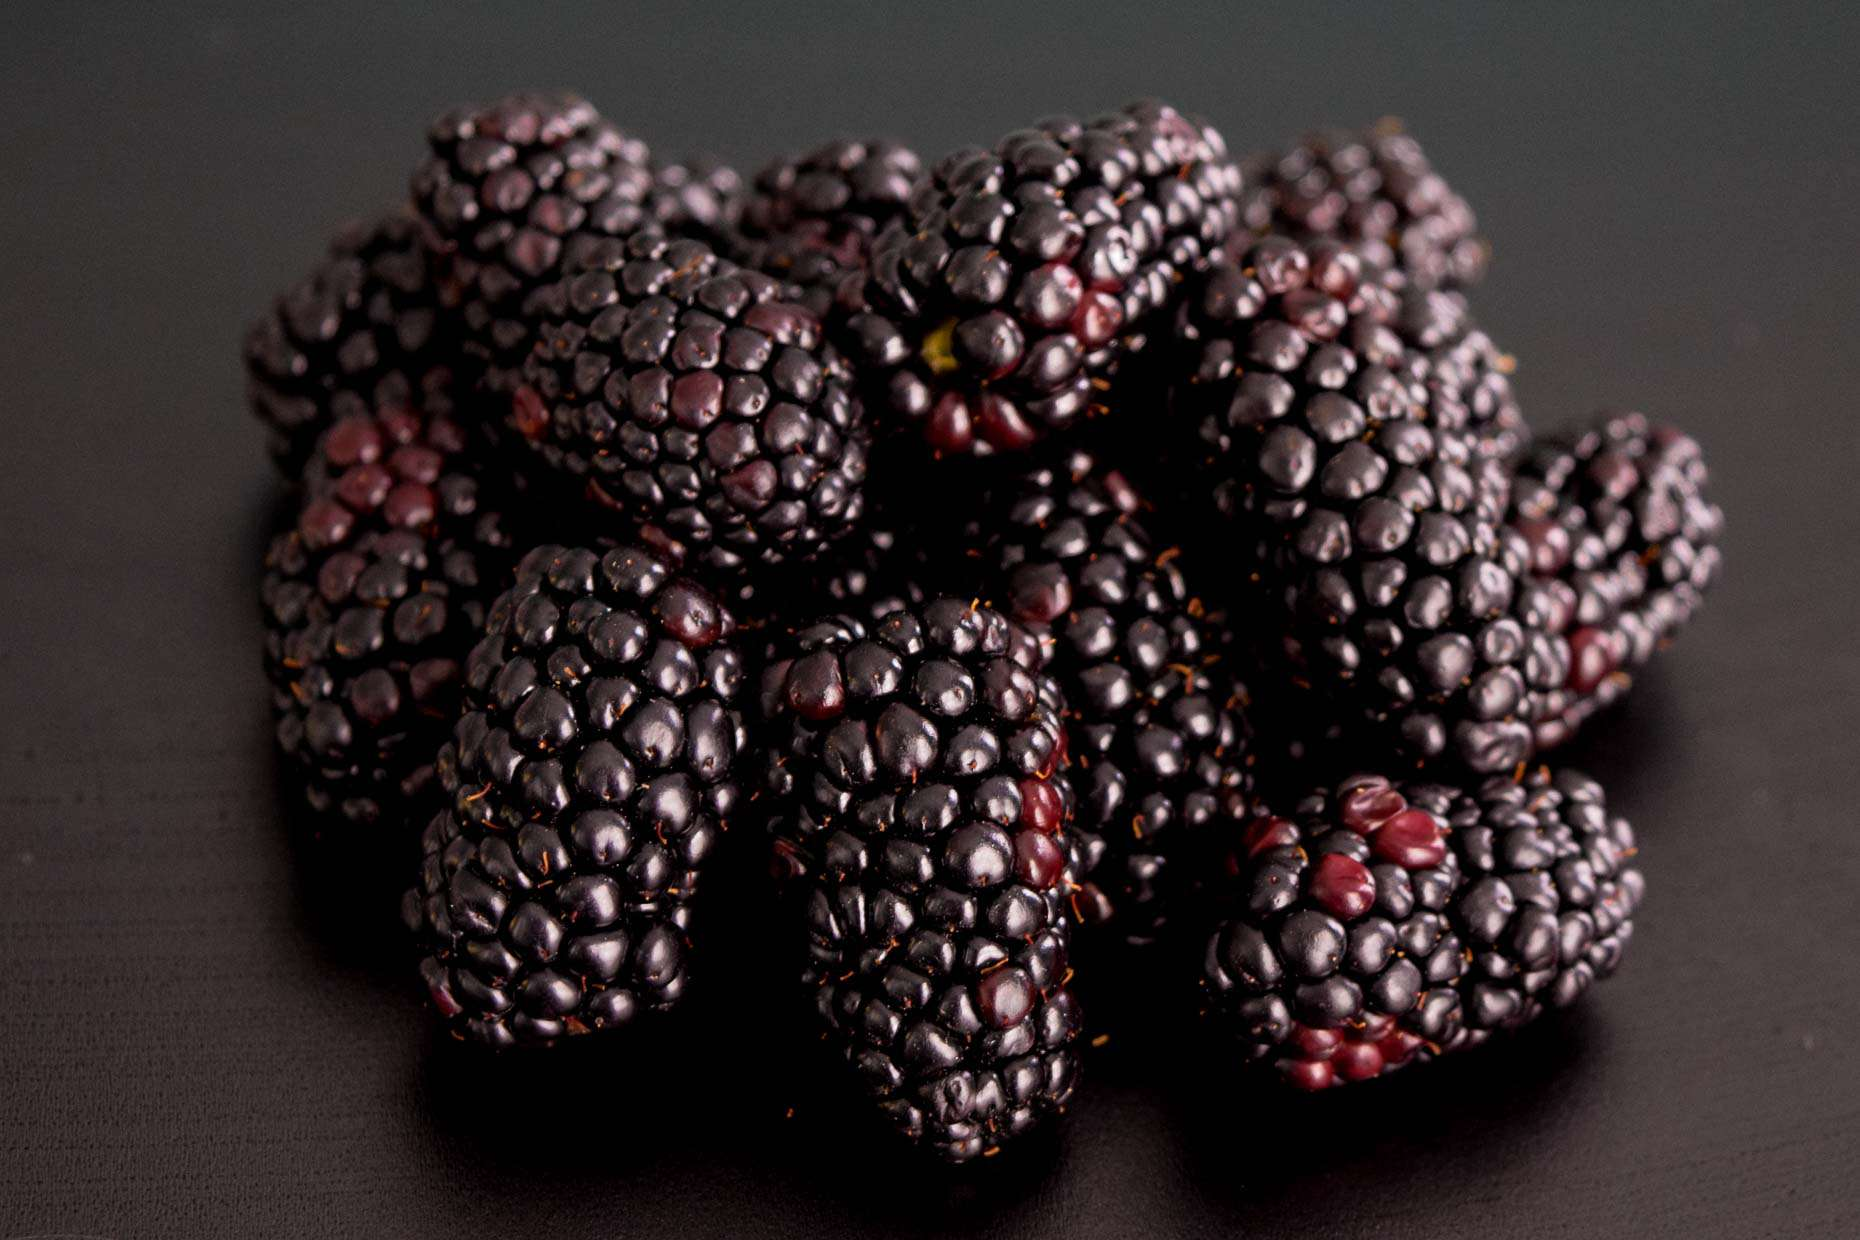 Blackberries on black background